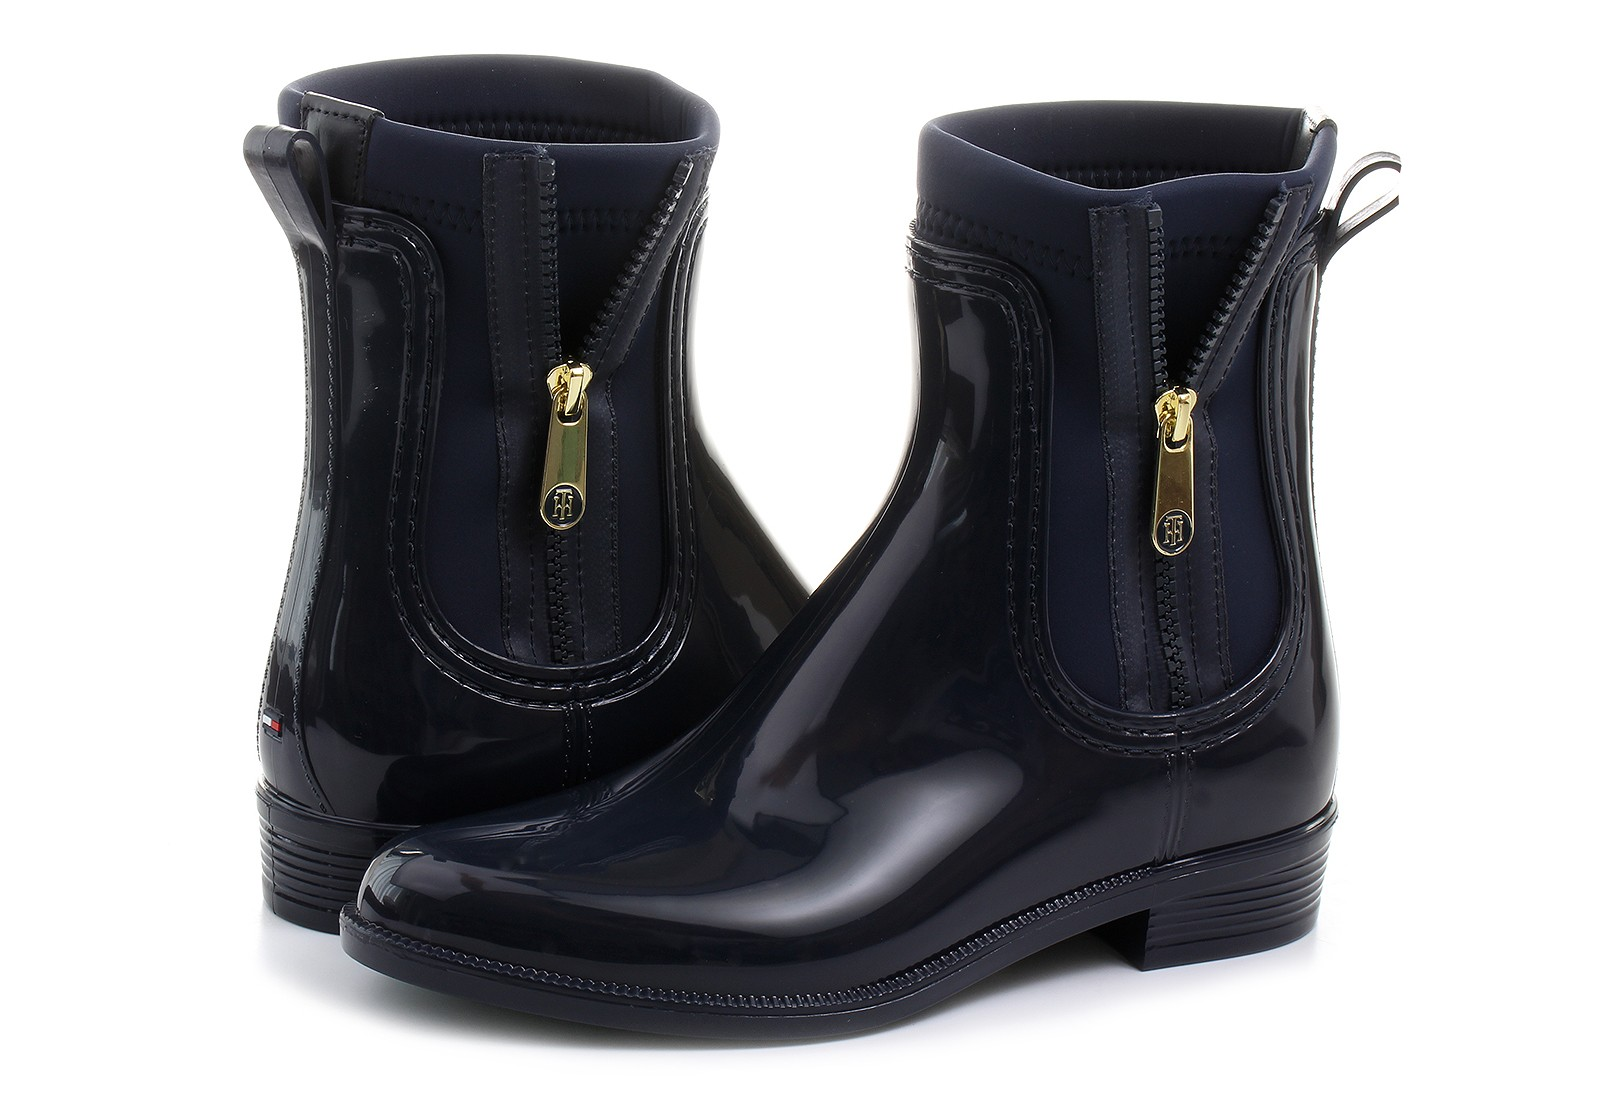 tommy hilfiger boots odette 12r 17f 1265 403 online shop for sneakers shoes and boots. Black Bedroom Furniture Sets. Home Design Ideas